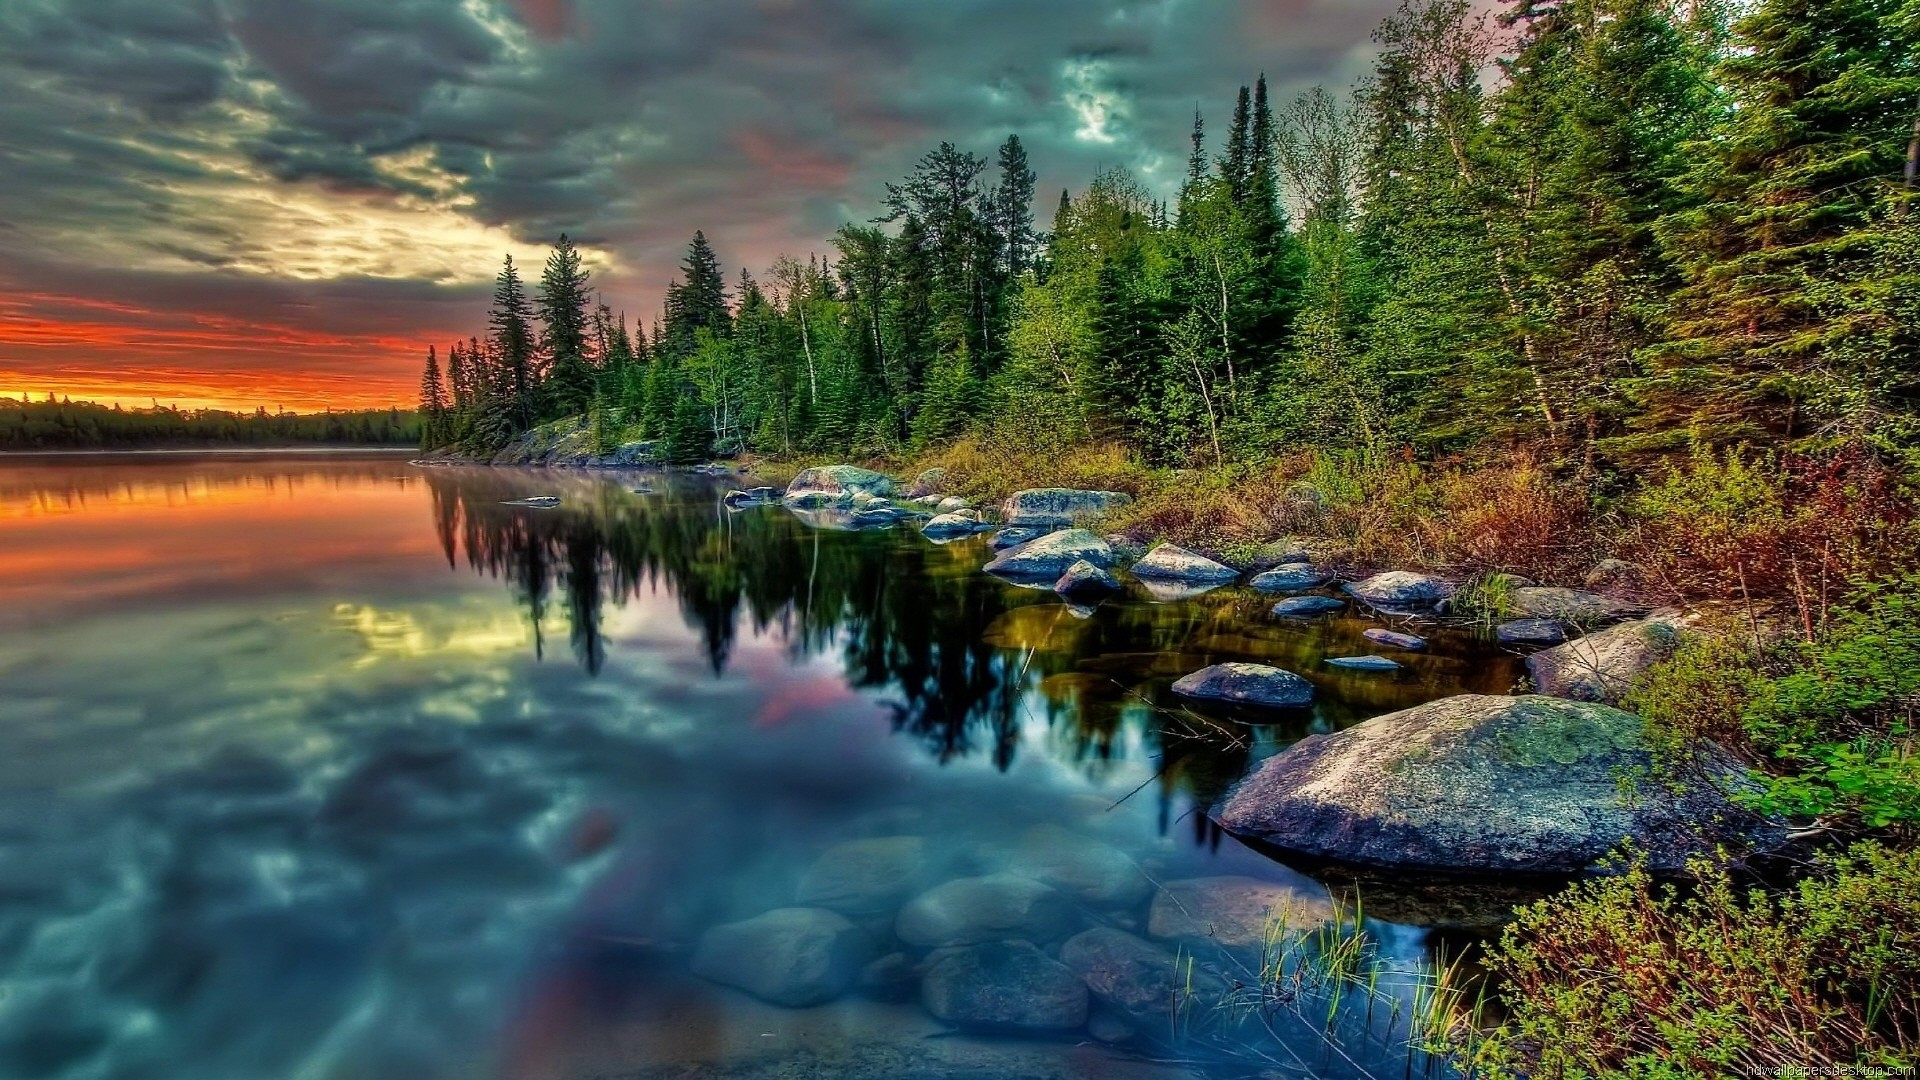 Nature HD Wallpapers, Nature Full HD 1080p Wallpapers, Nature .